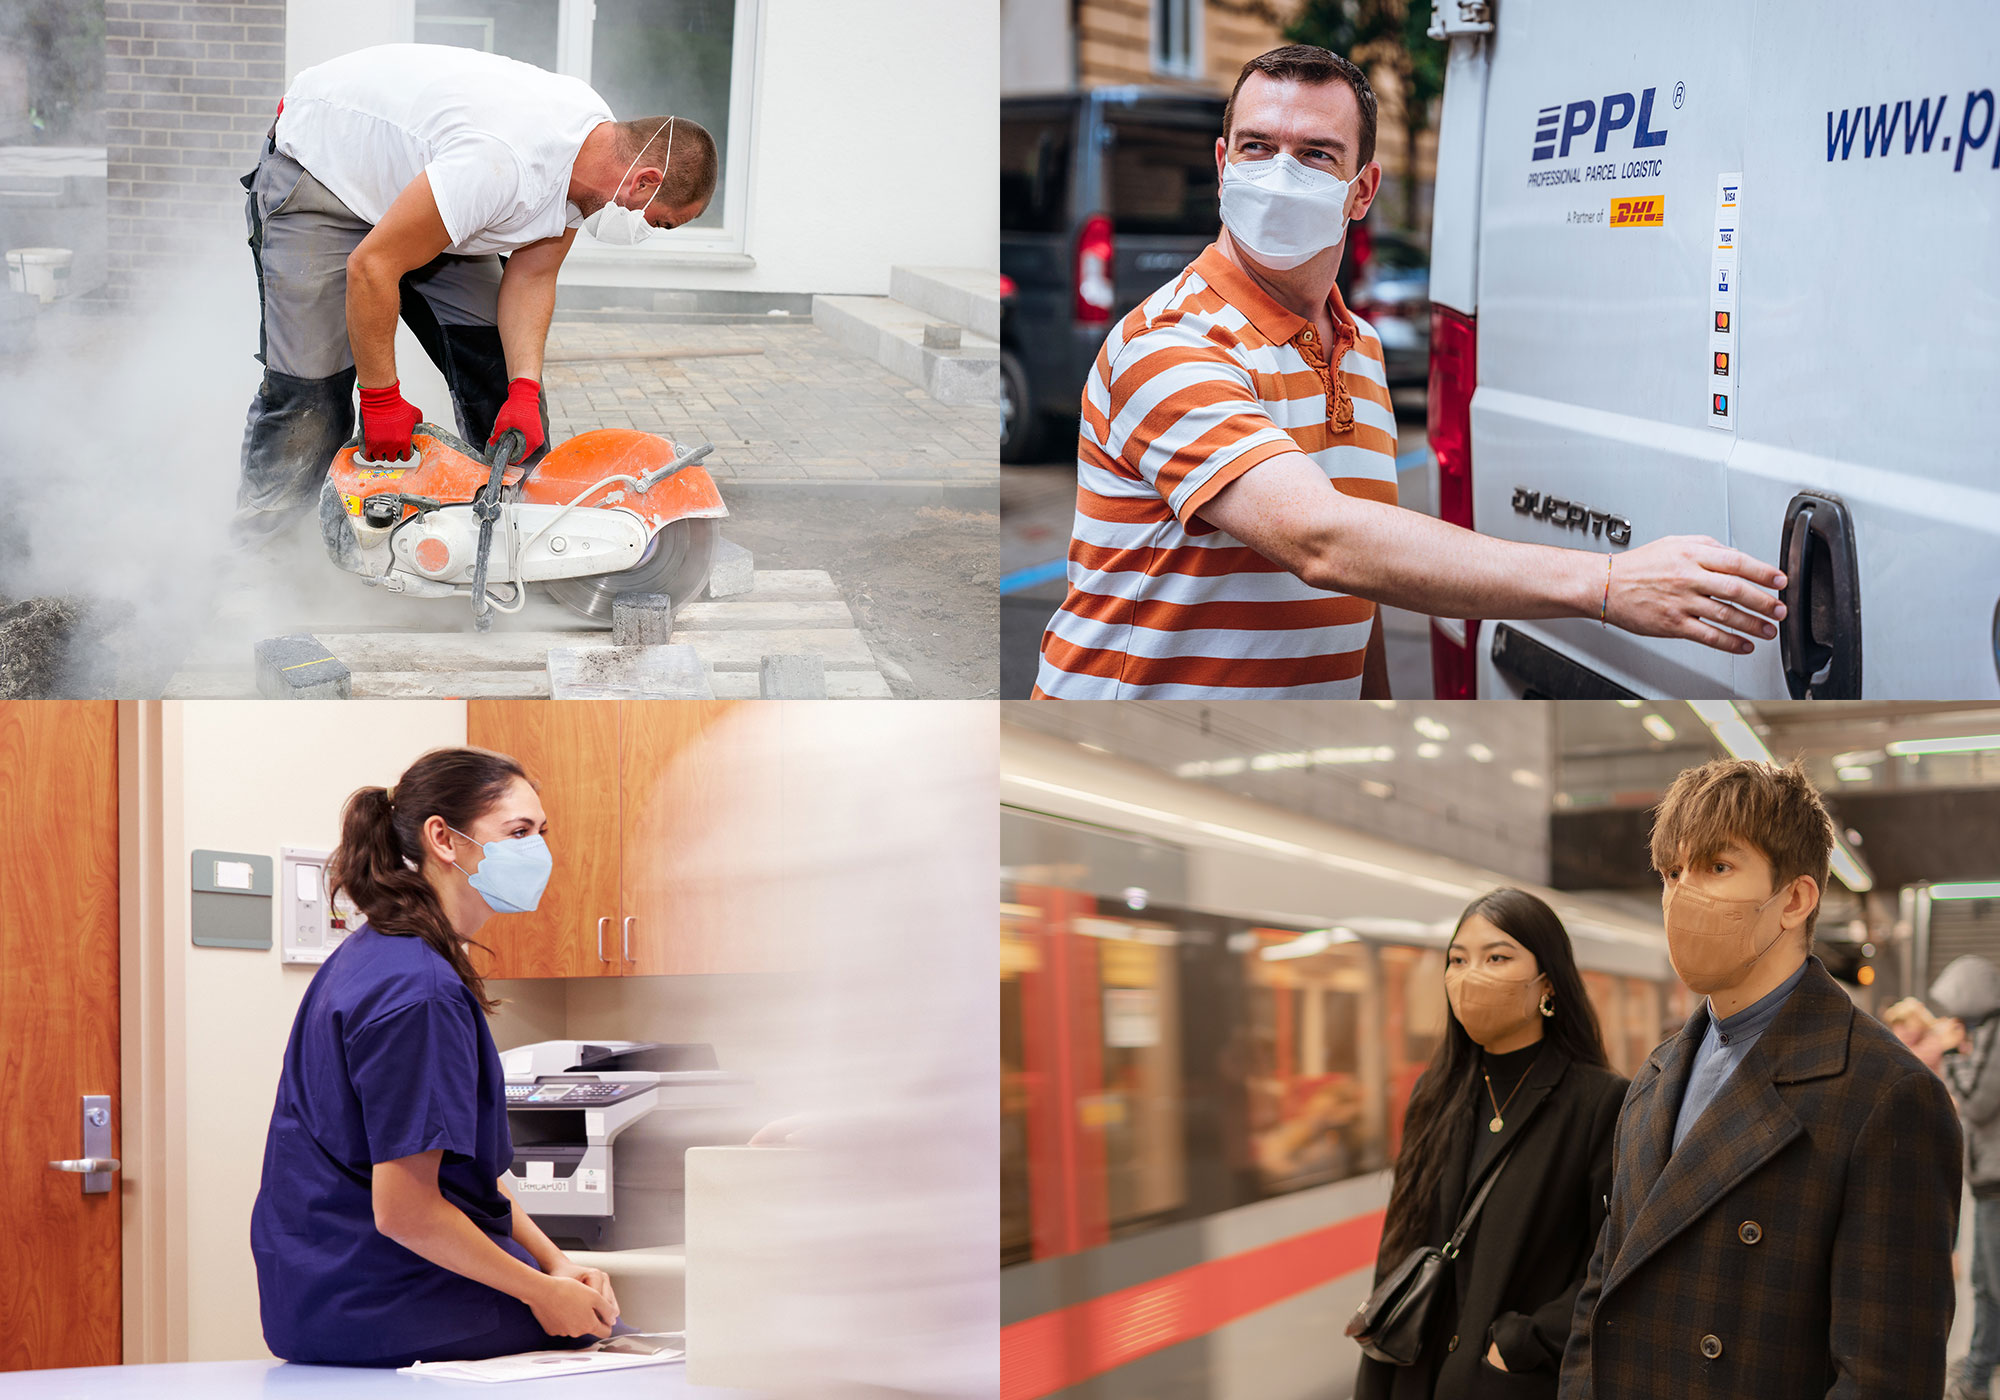 tradesman, nurses, a delivery driver and people on a train wearing respilon ppe respirators